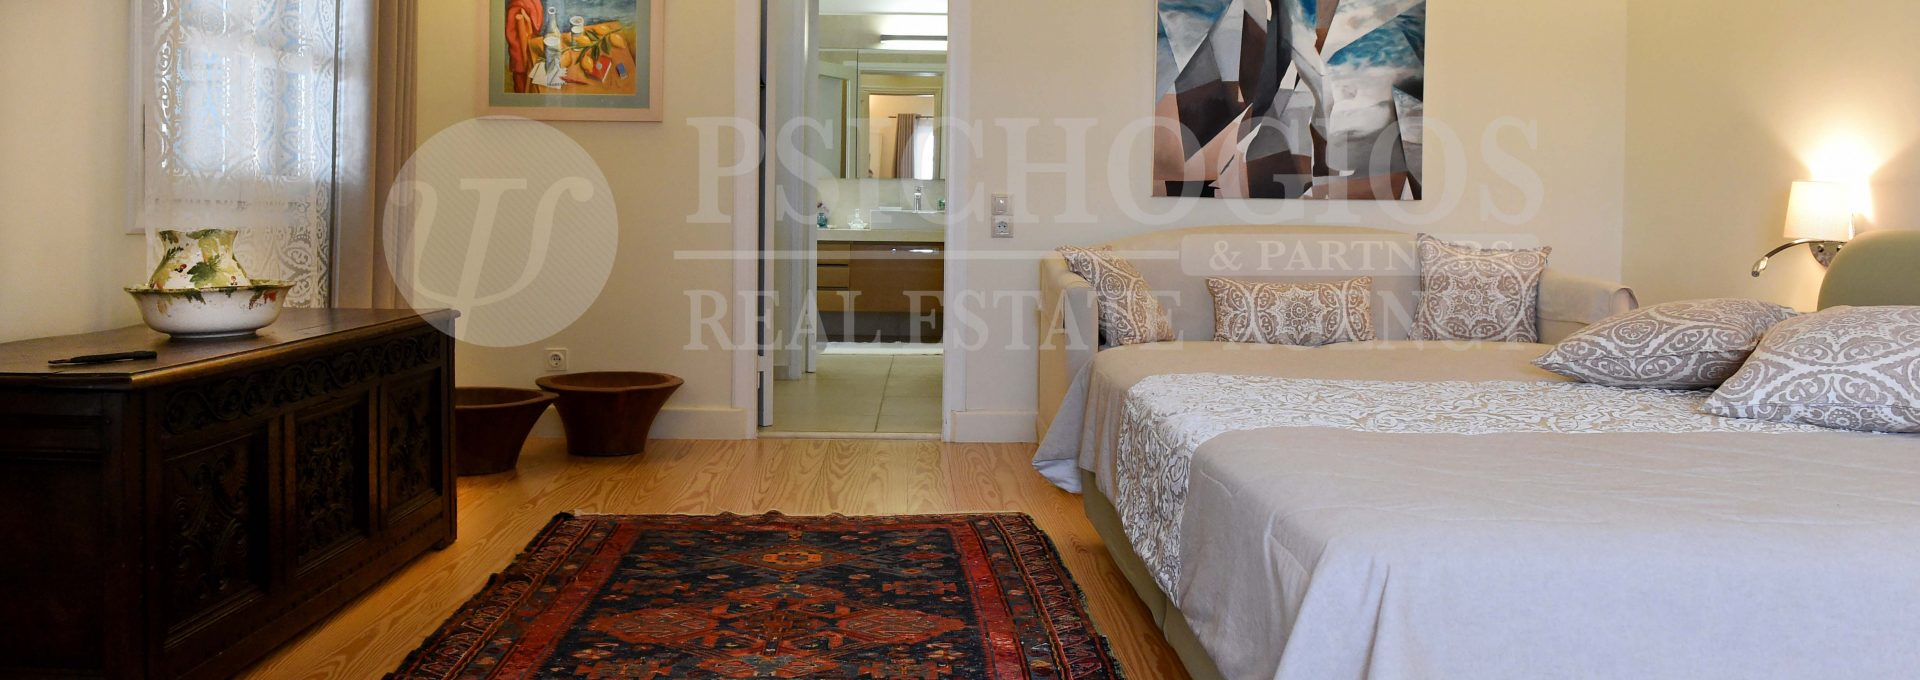 for_rent_house_600_square_meters_sea_view_porto_heli_greece (52)